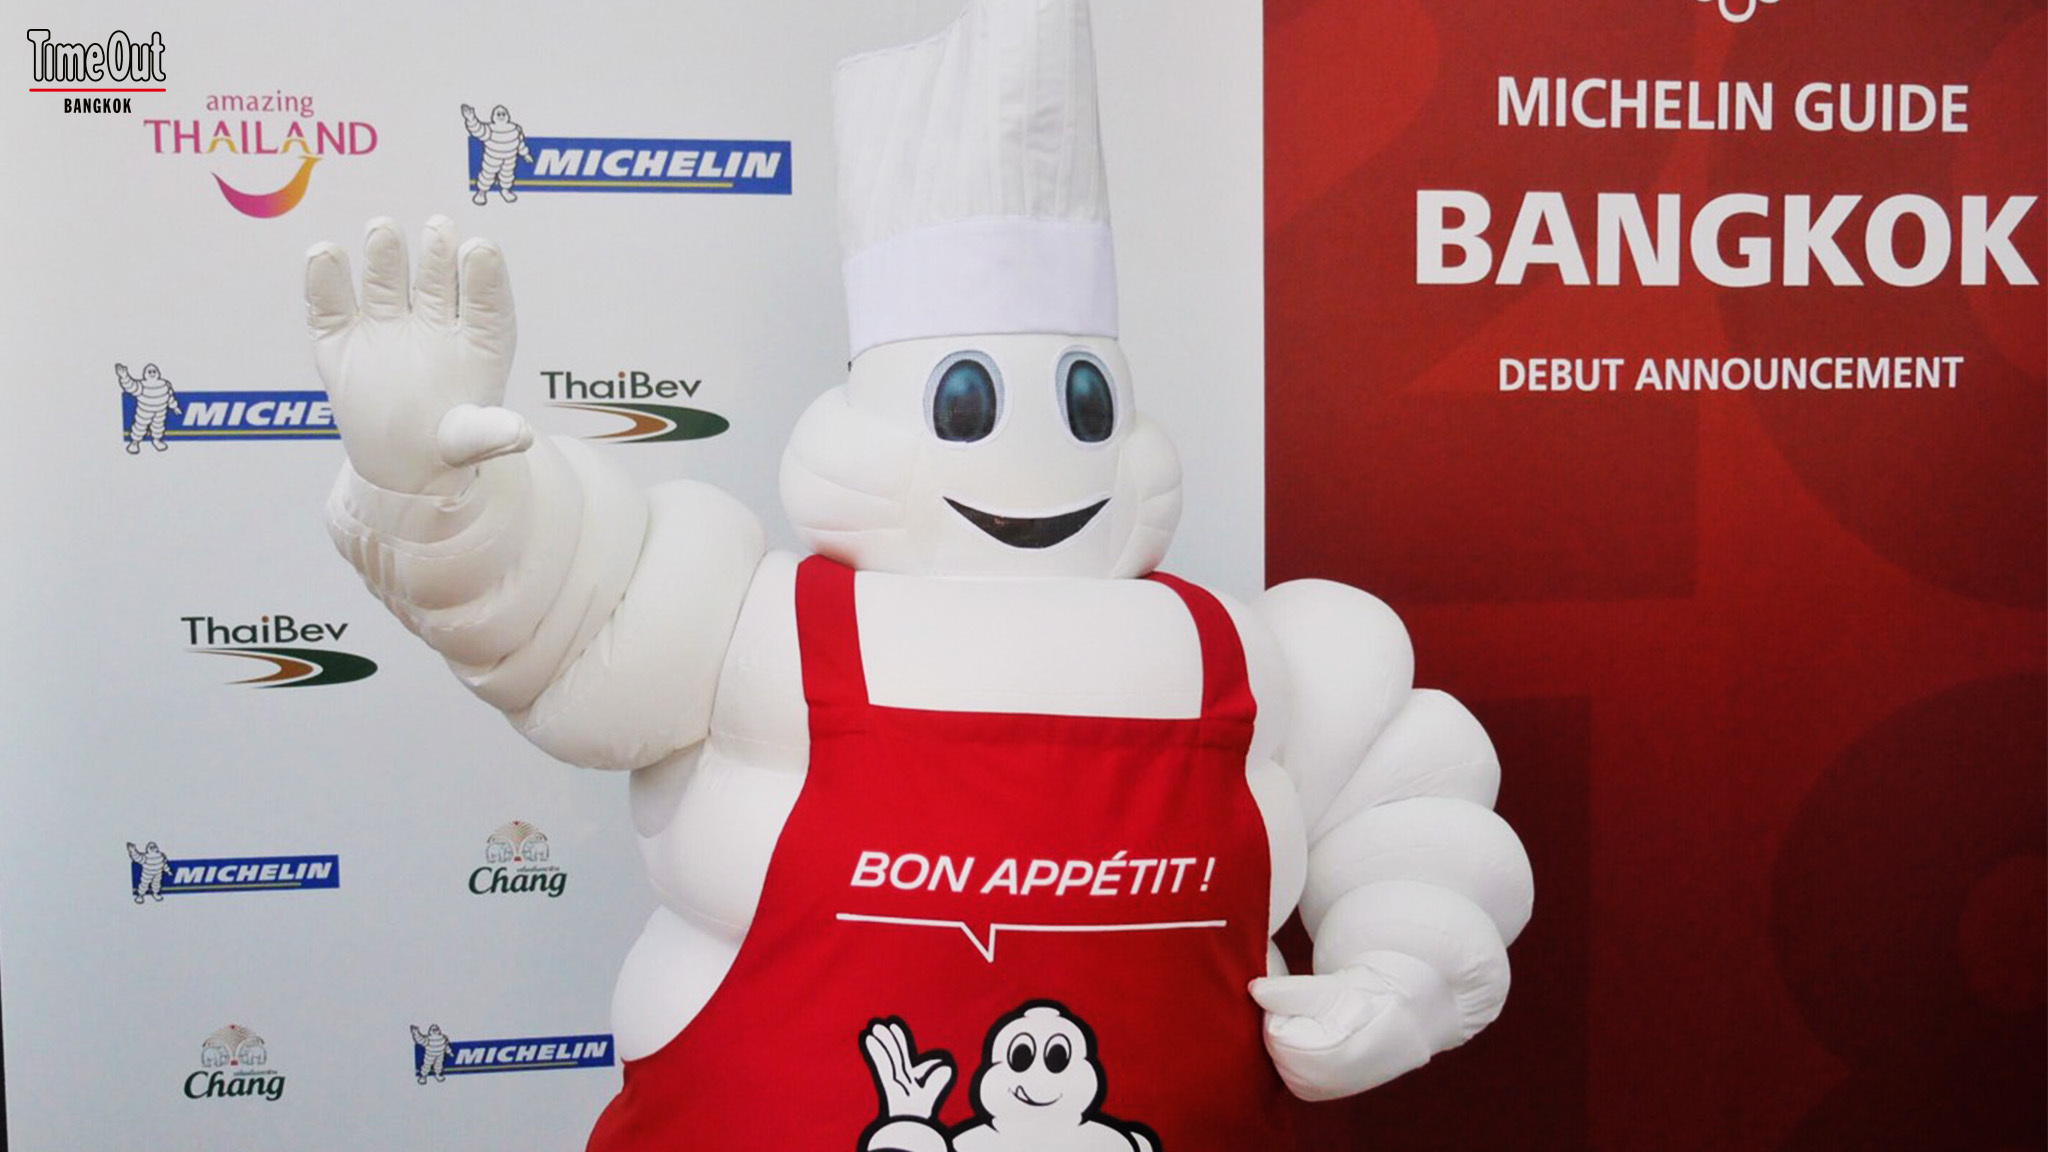 Resturants in Bangkok with Michelin Stars